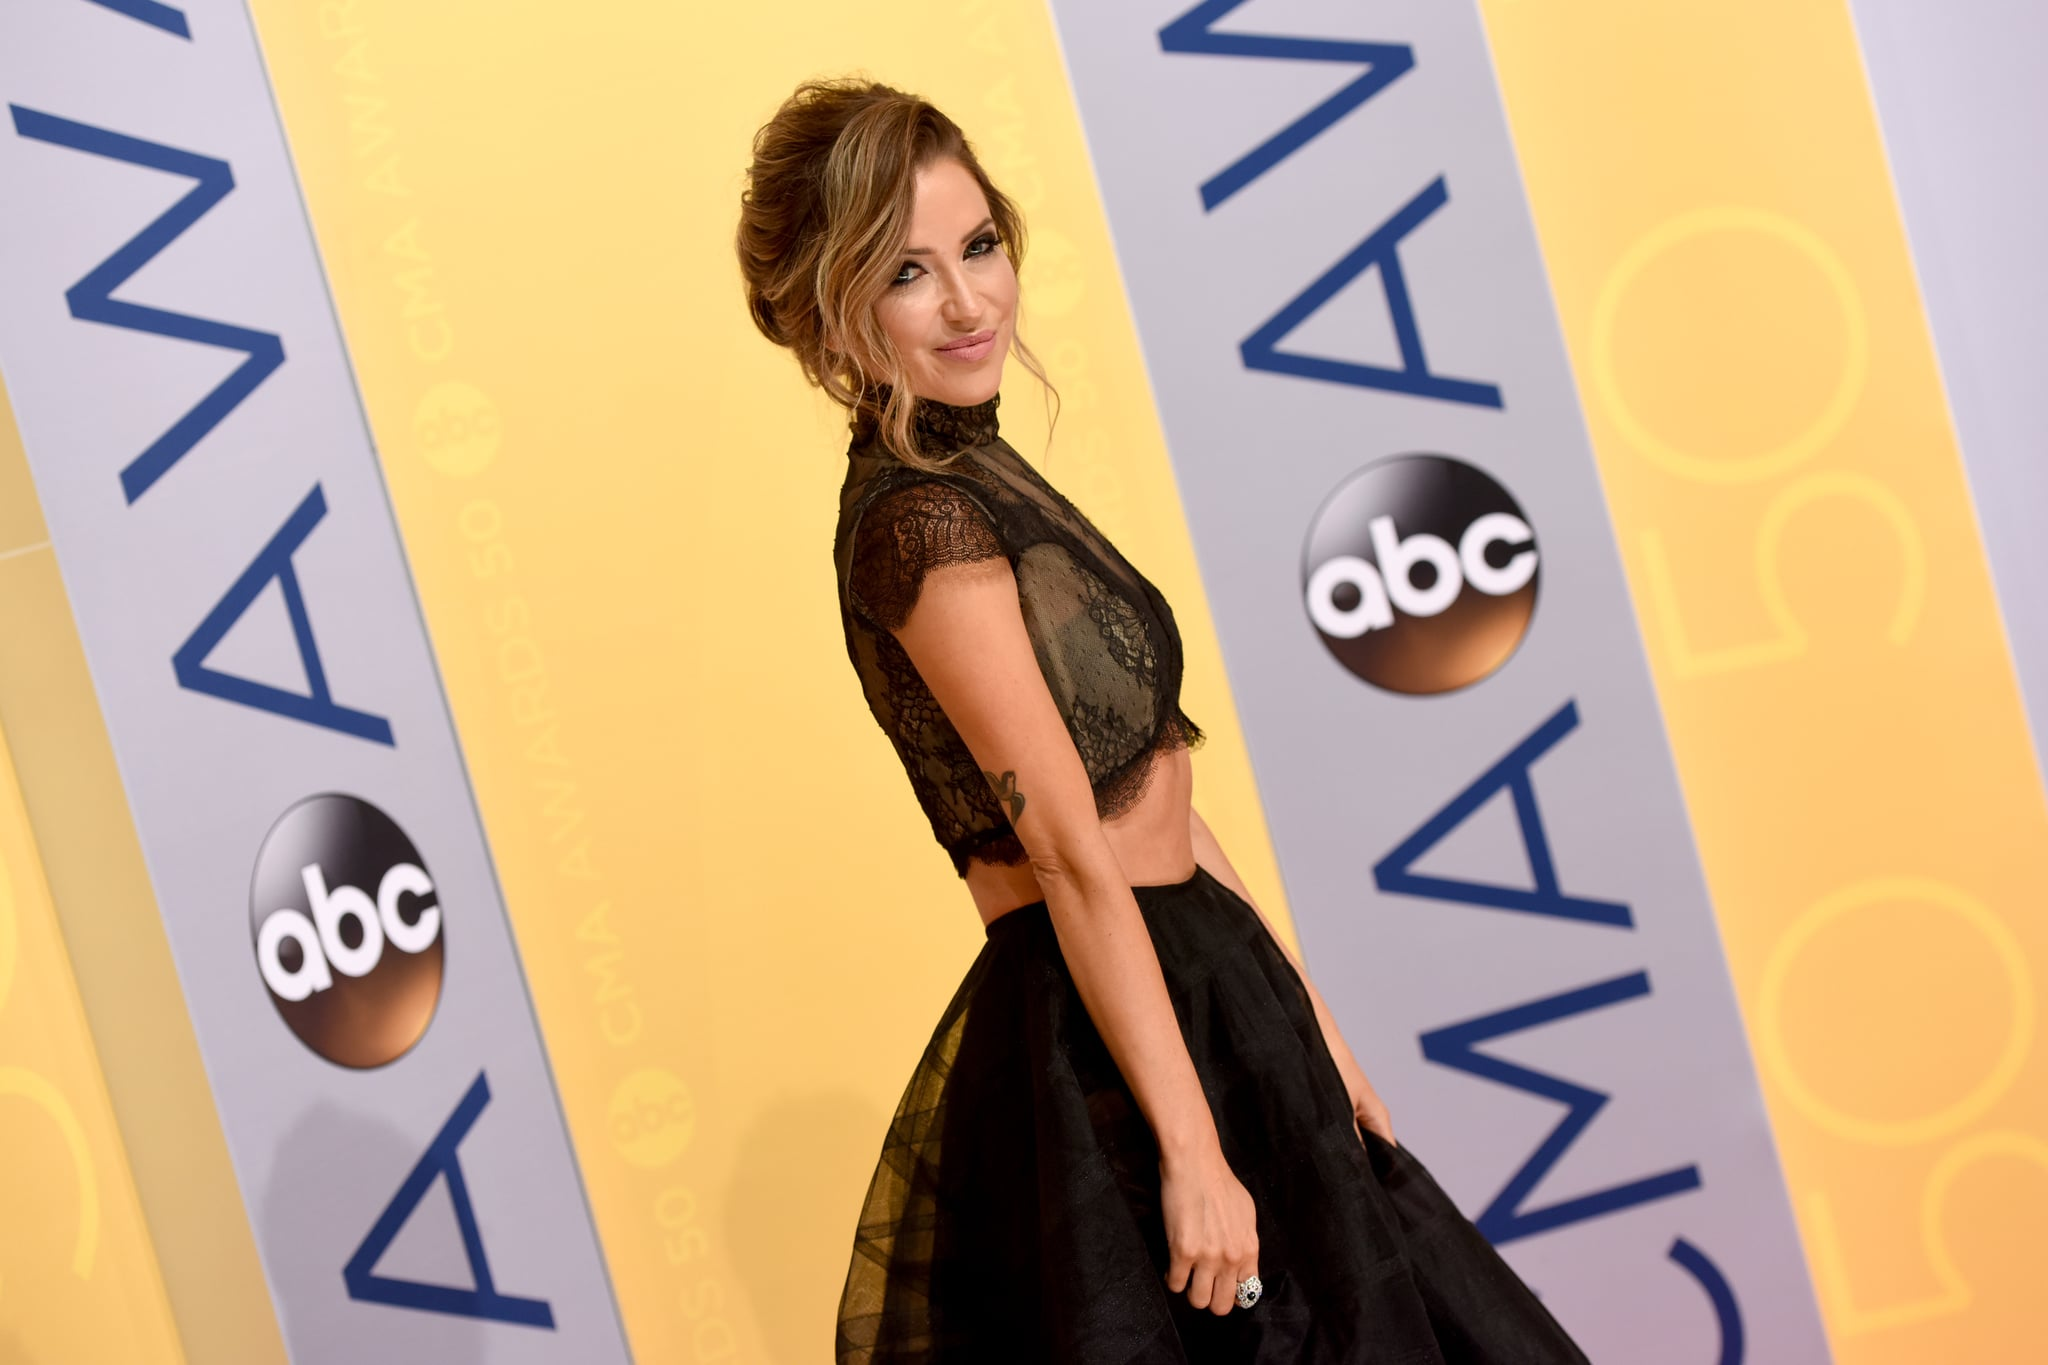 NASHVILLE, TN - NOVEMBER 02:  TV personality Kaitlyn Bristowe attends the 50th annual CMA Awards at the Bridgestone Arena on November 2, 2016 in Nashville, Tennessee.  (Photo by John Shearer/WireImage)